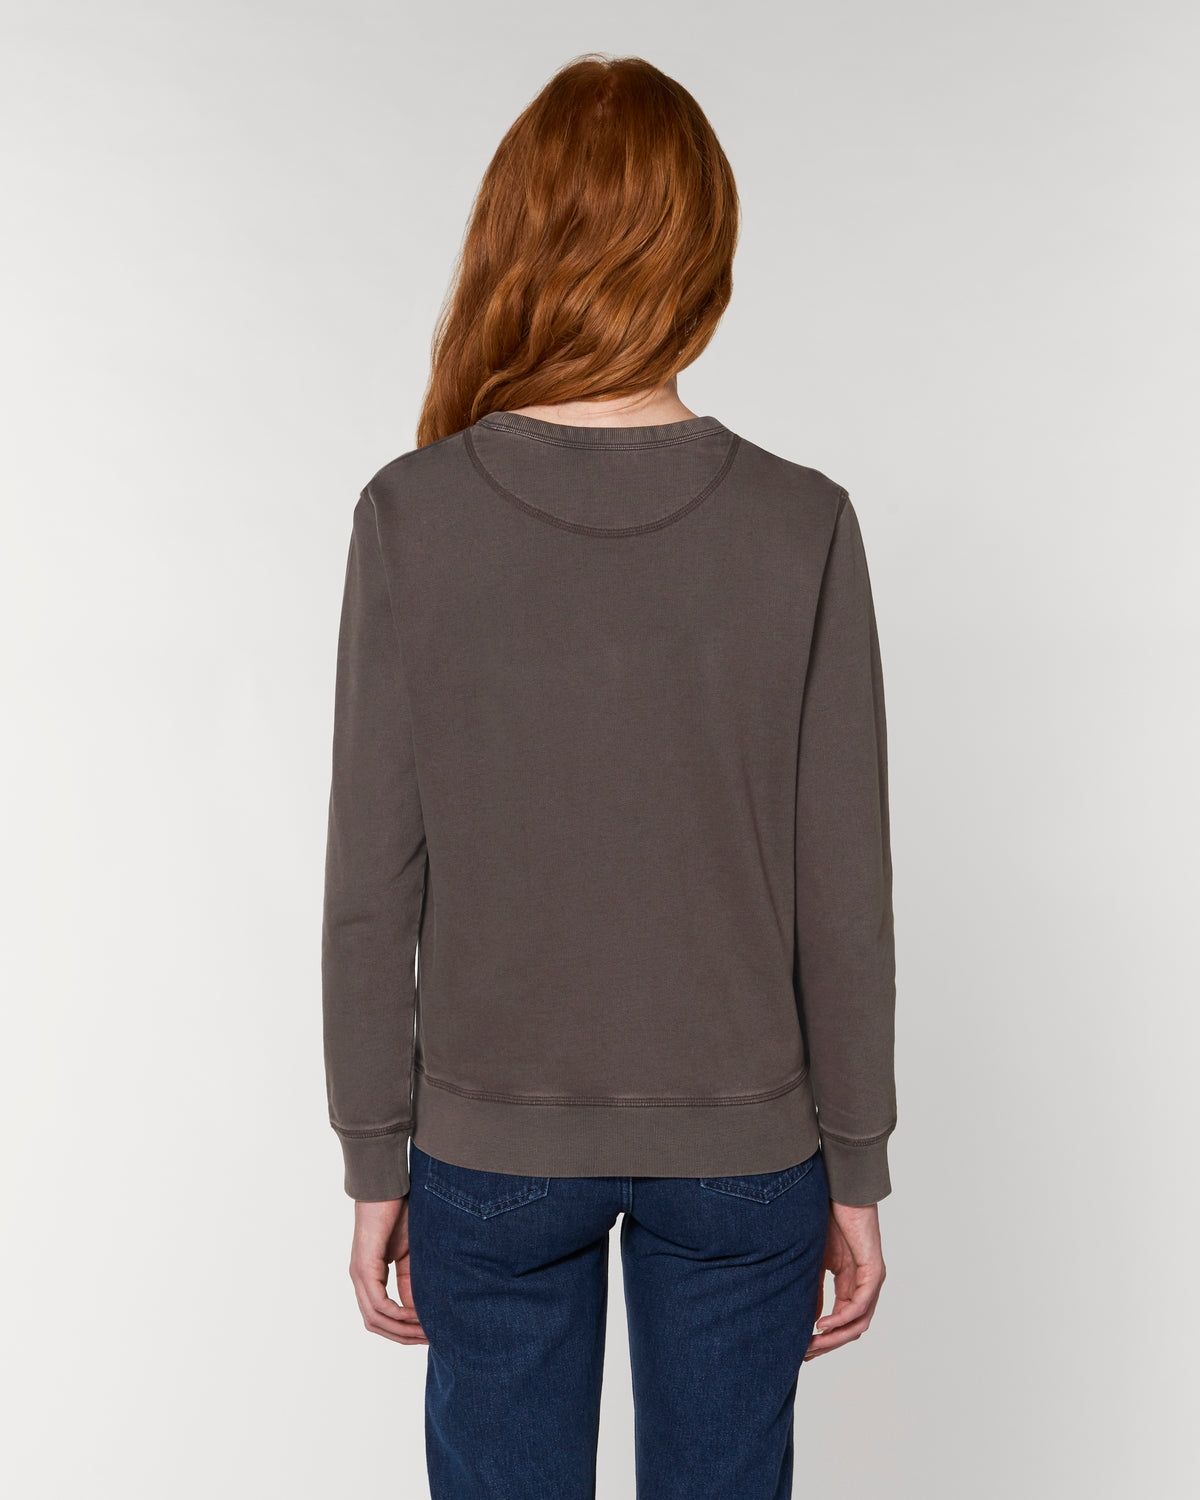 UNISEX VINTAGE GARMENT DYED CREW NECK 'JOINER' SWEATSHIRT - customisable centre chest embroidery